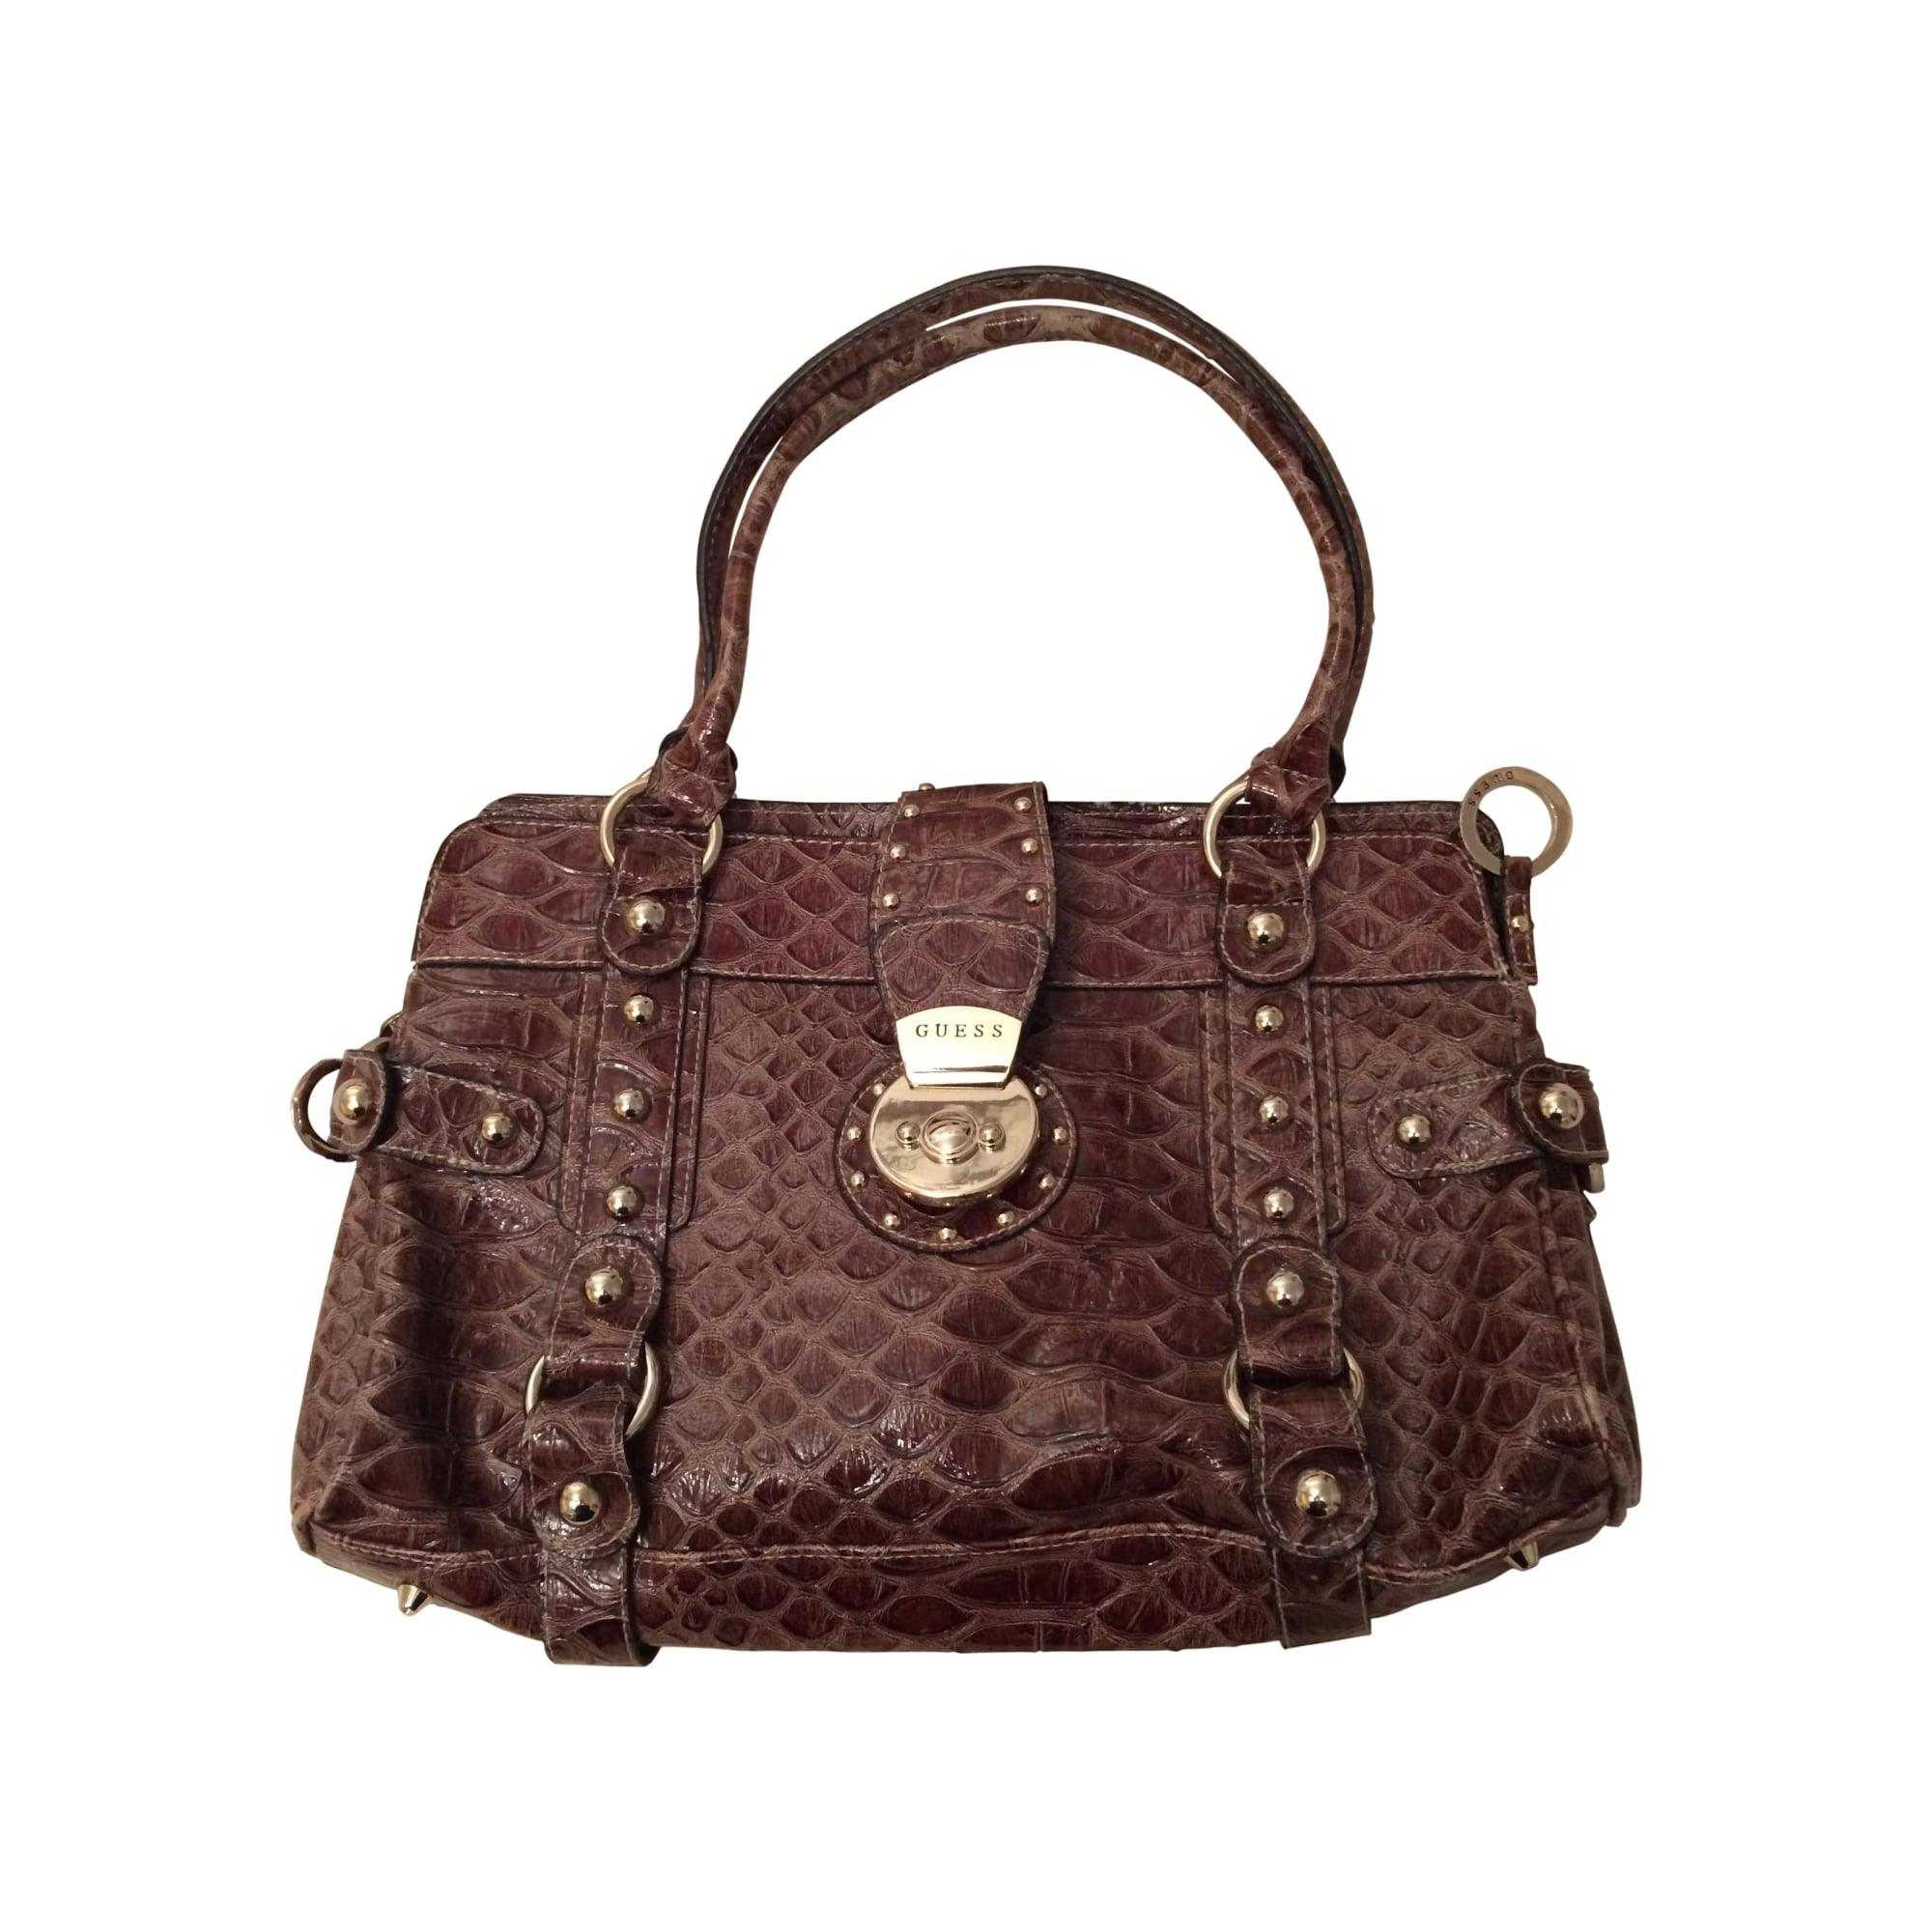 6831910c9f Sac à main en cuir GUESS marron vendu par Alice-10 - 2442930